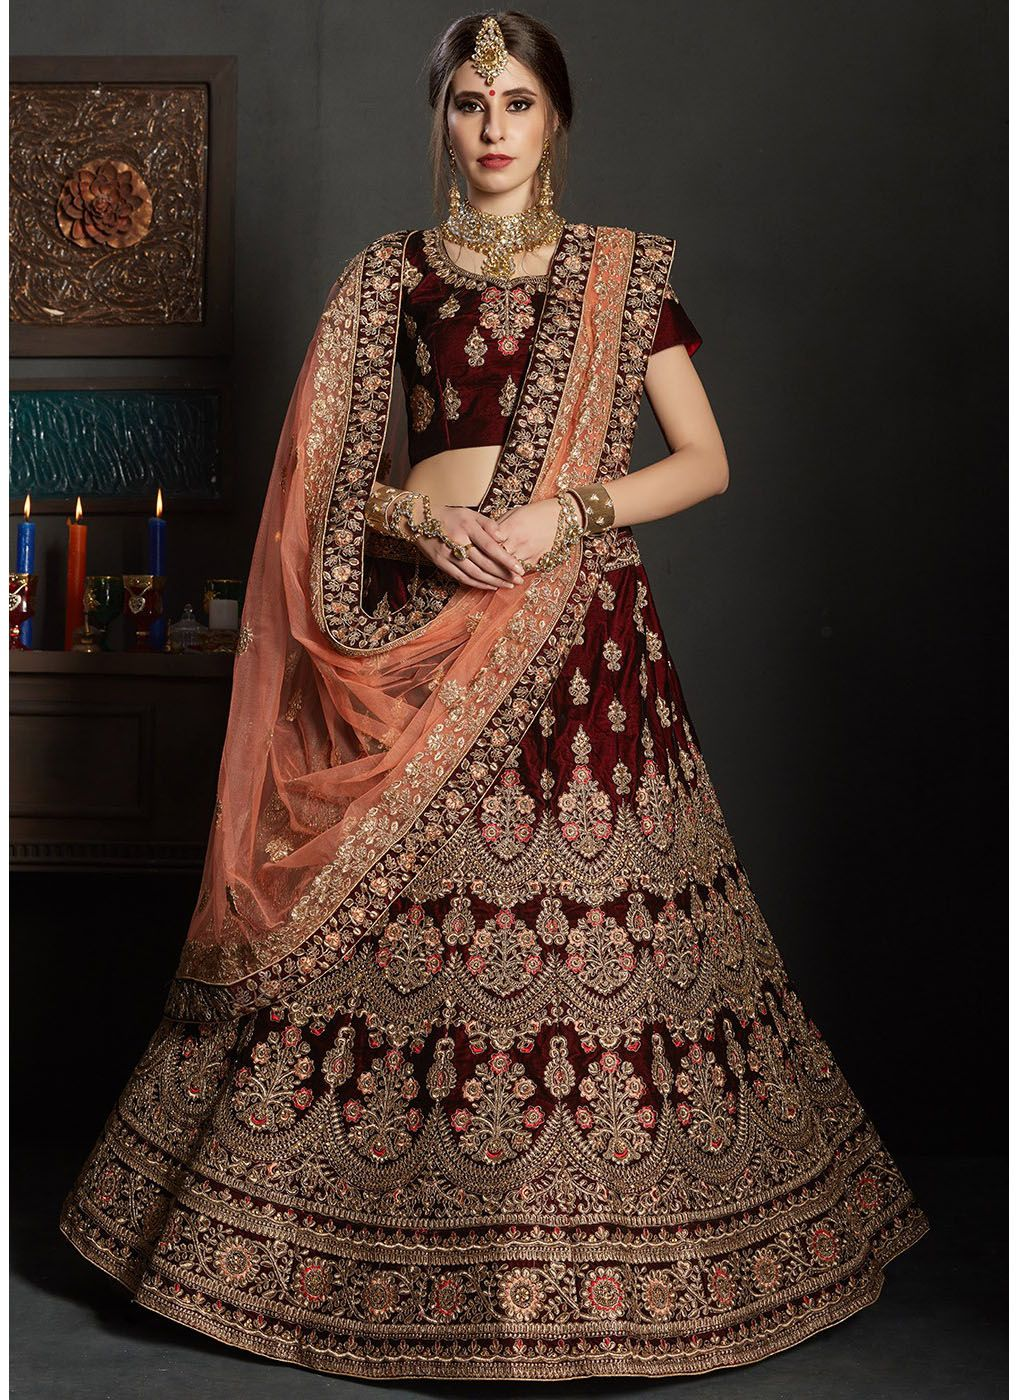 Velvet Wedding Lehenga in Maroon